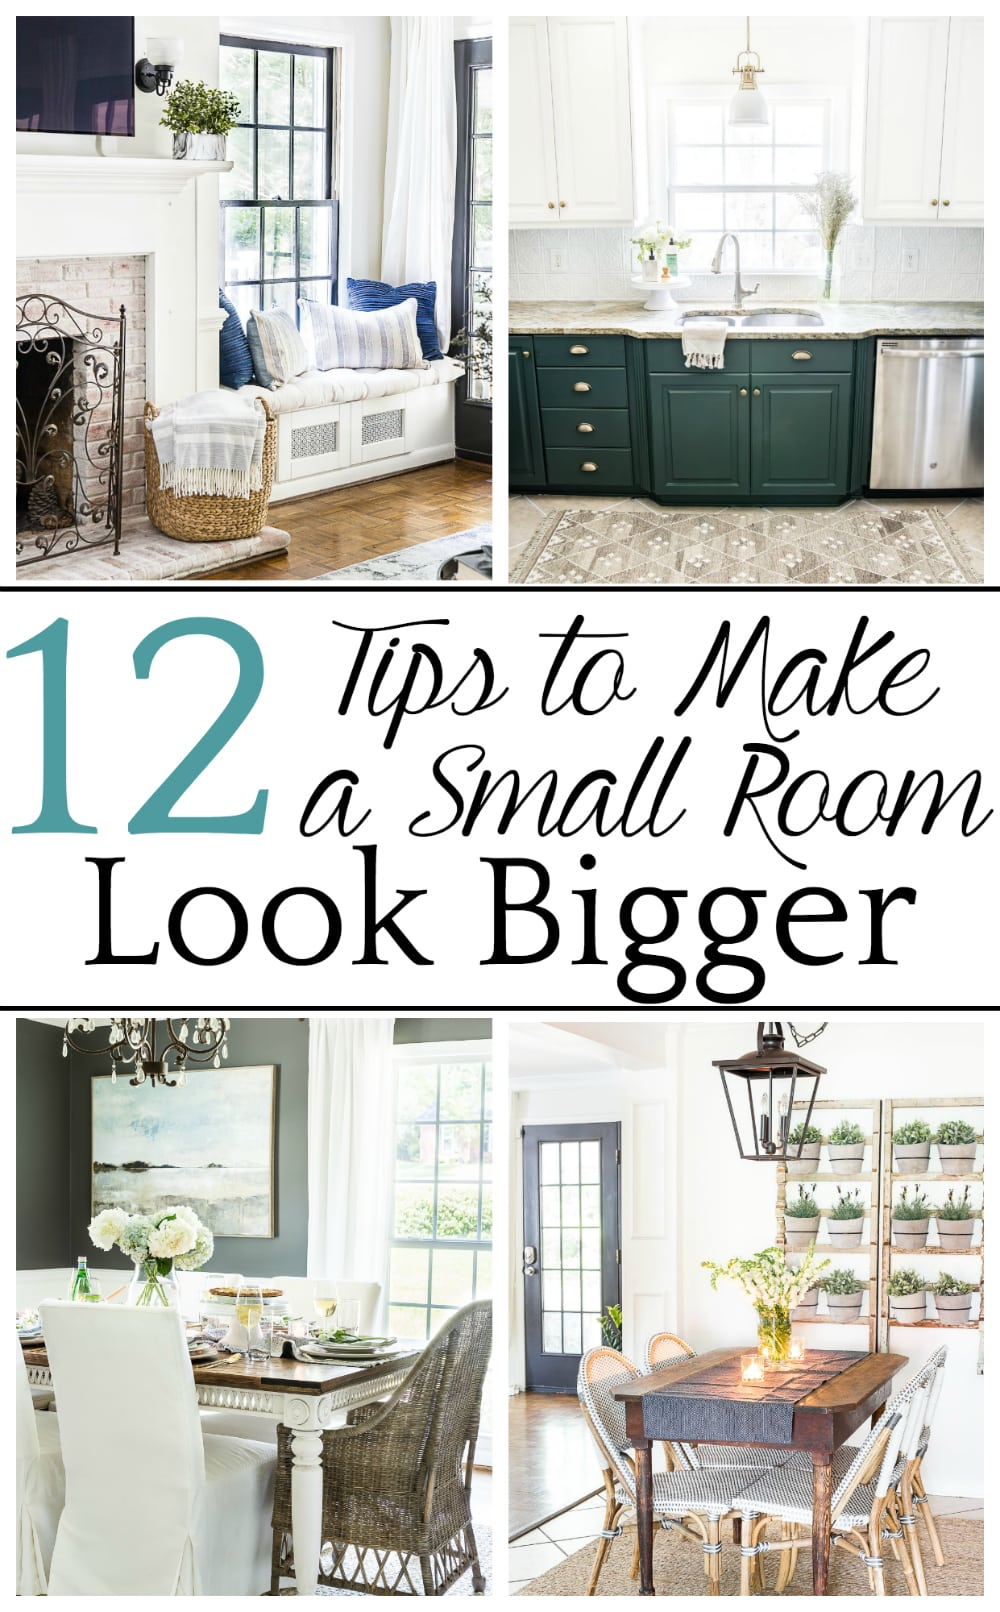 What Color To Paint A Small Room Look Bigger